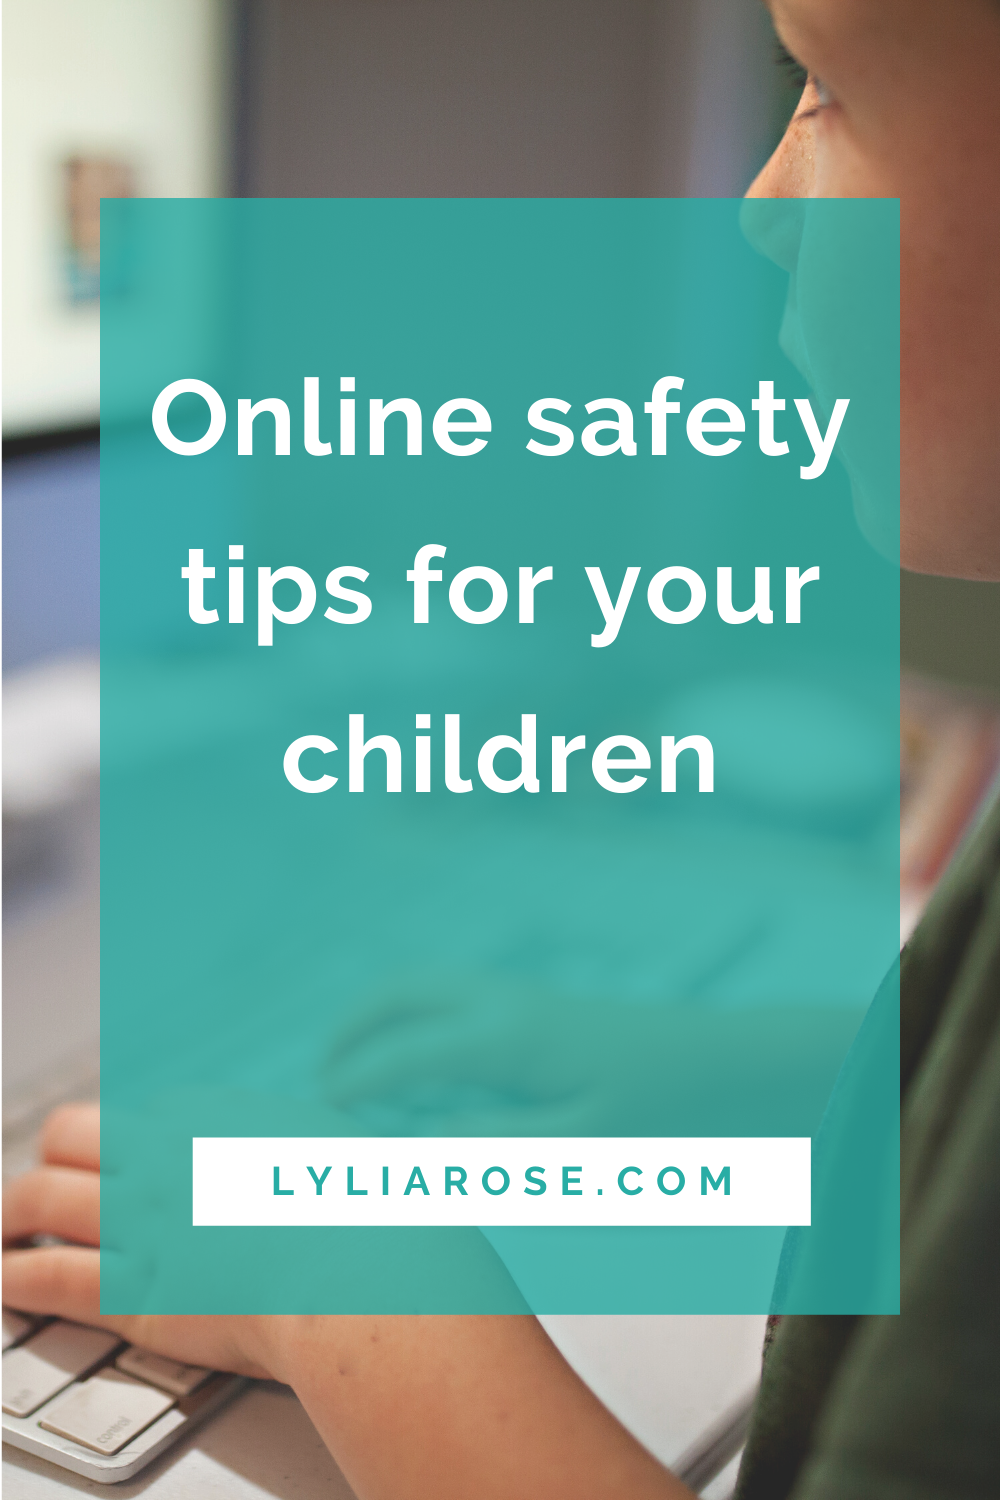 Online safety tips for your children